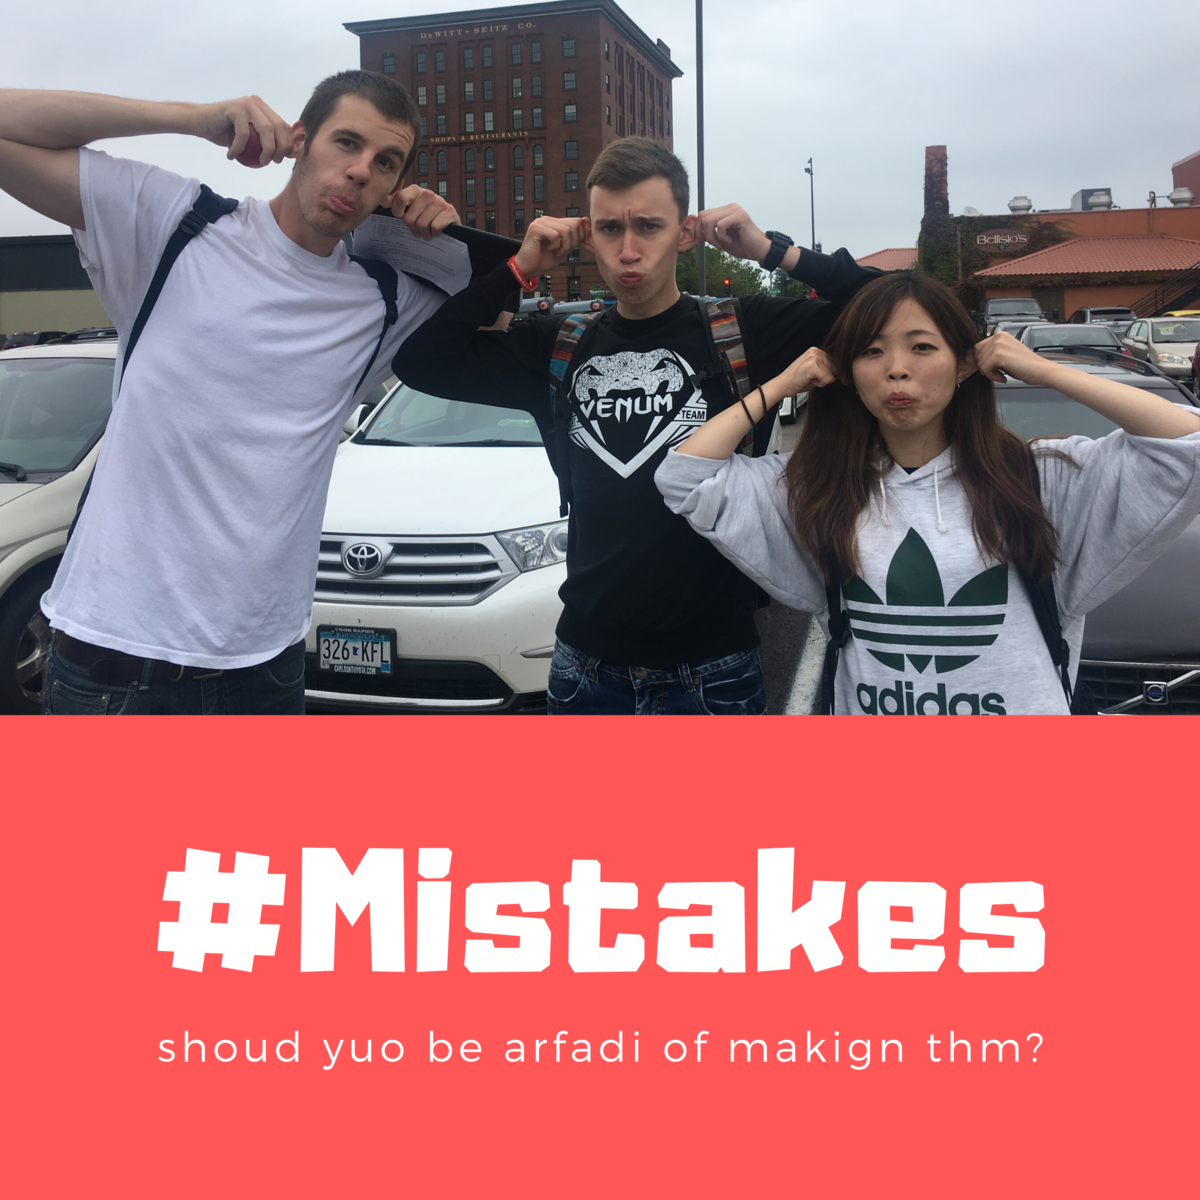 MISTAKES! TO BE AFRAID OR NOT TO BE!